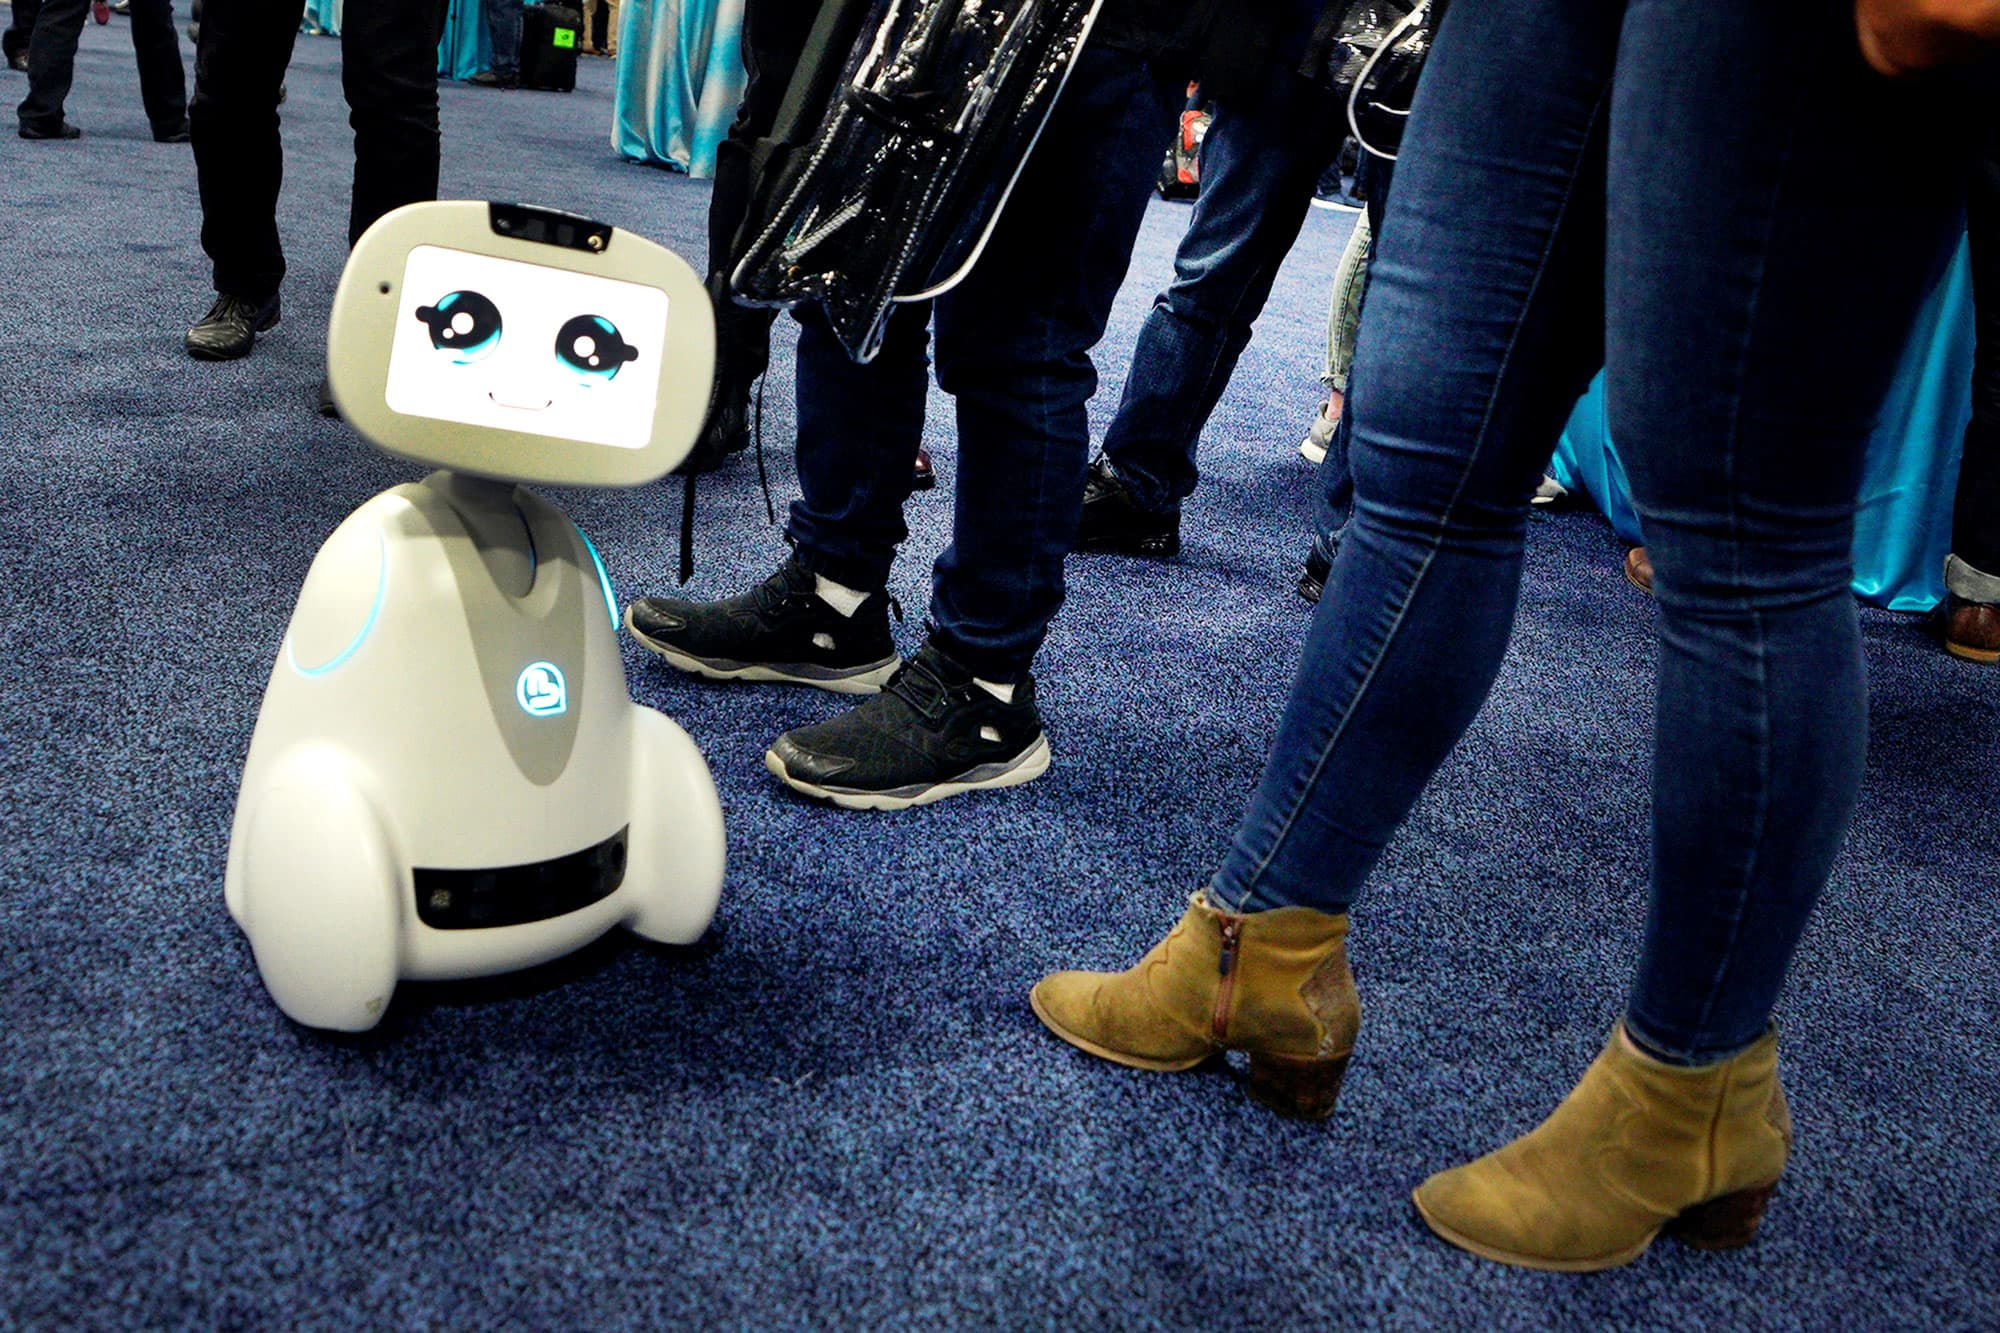 Buddy robot by Blue Frog roams the floor during the opening event at CES in Las Vegas, January 7, 2018.